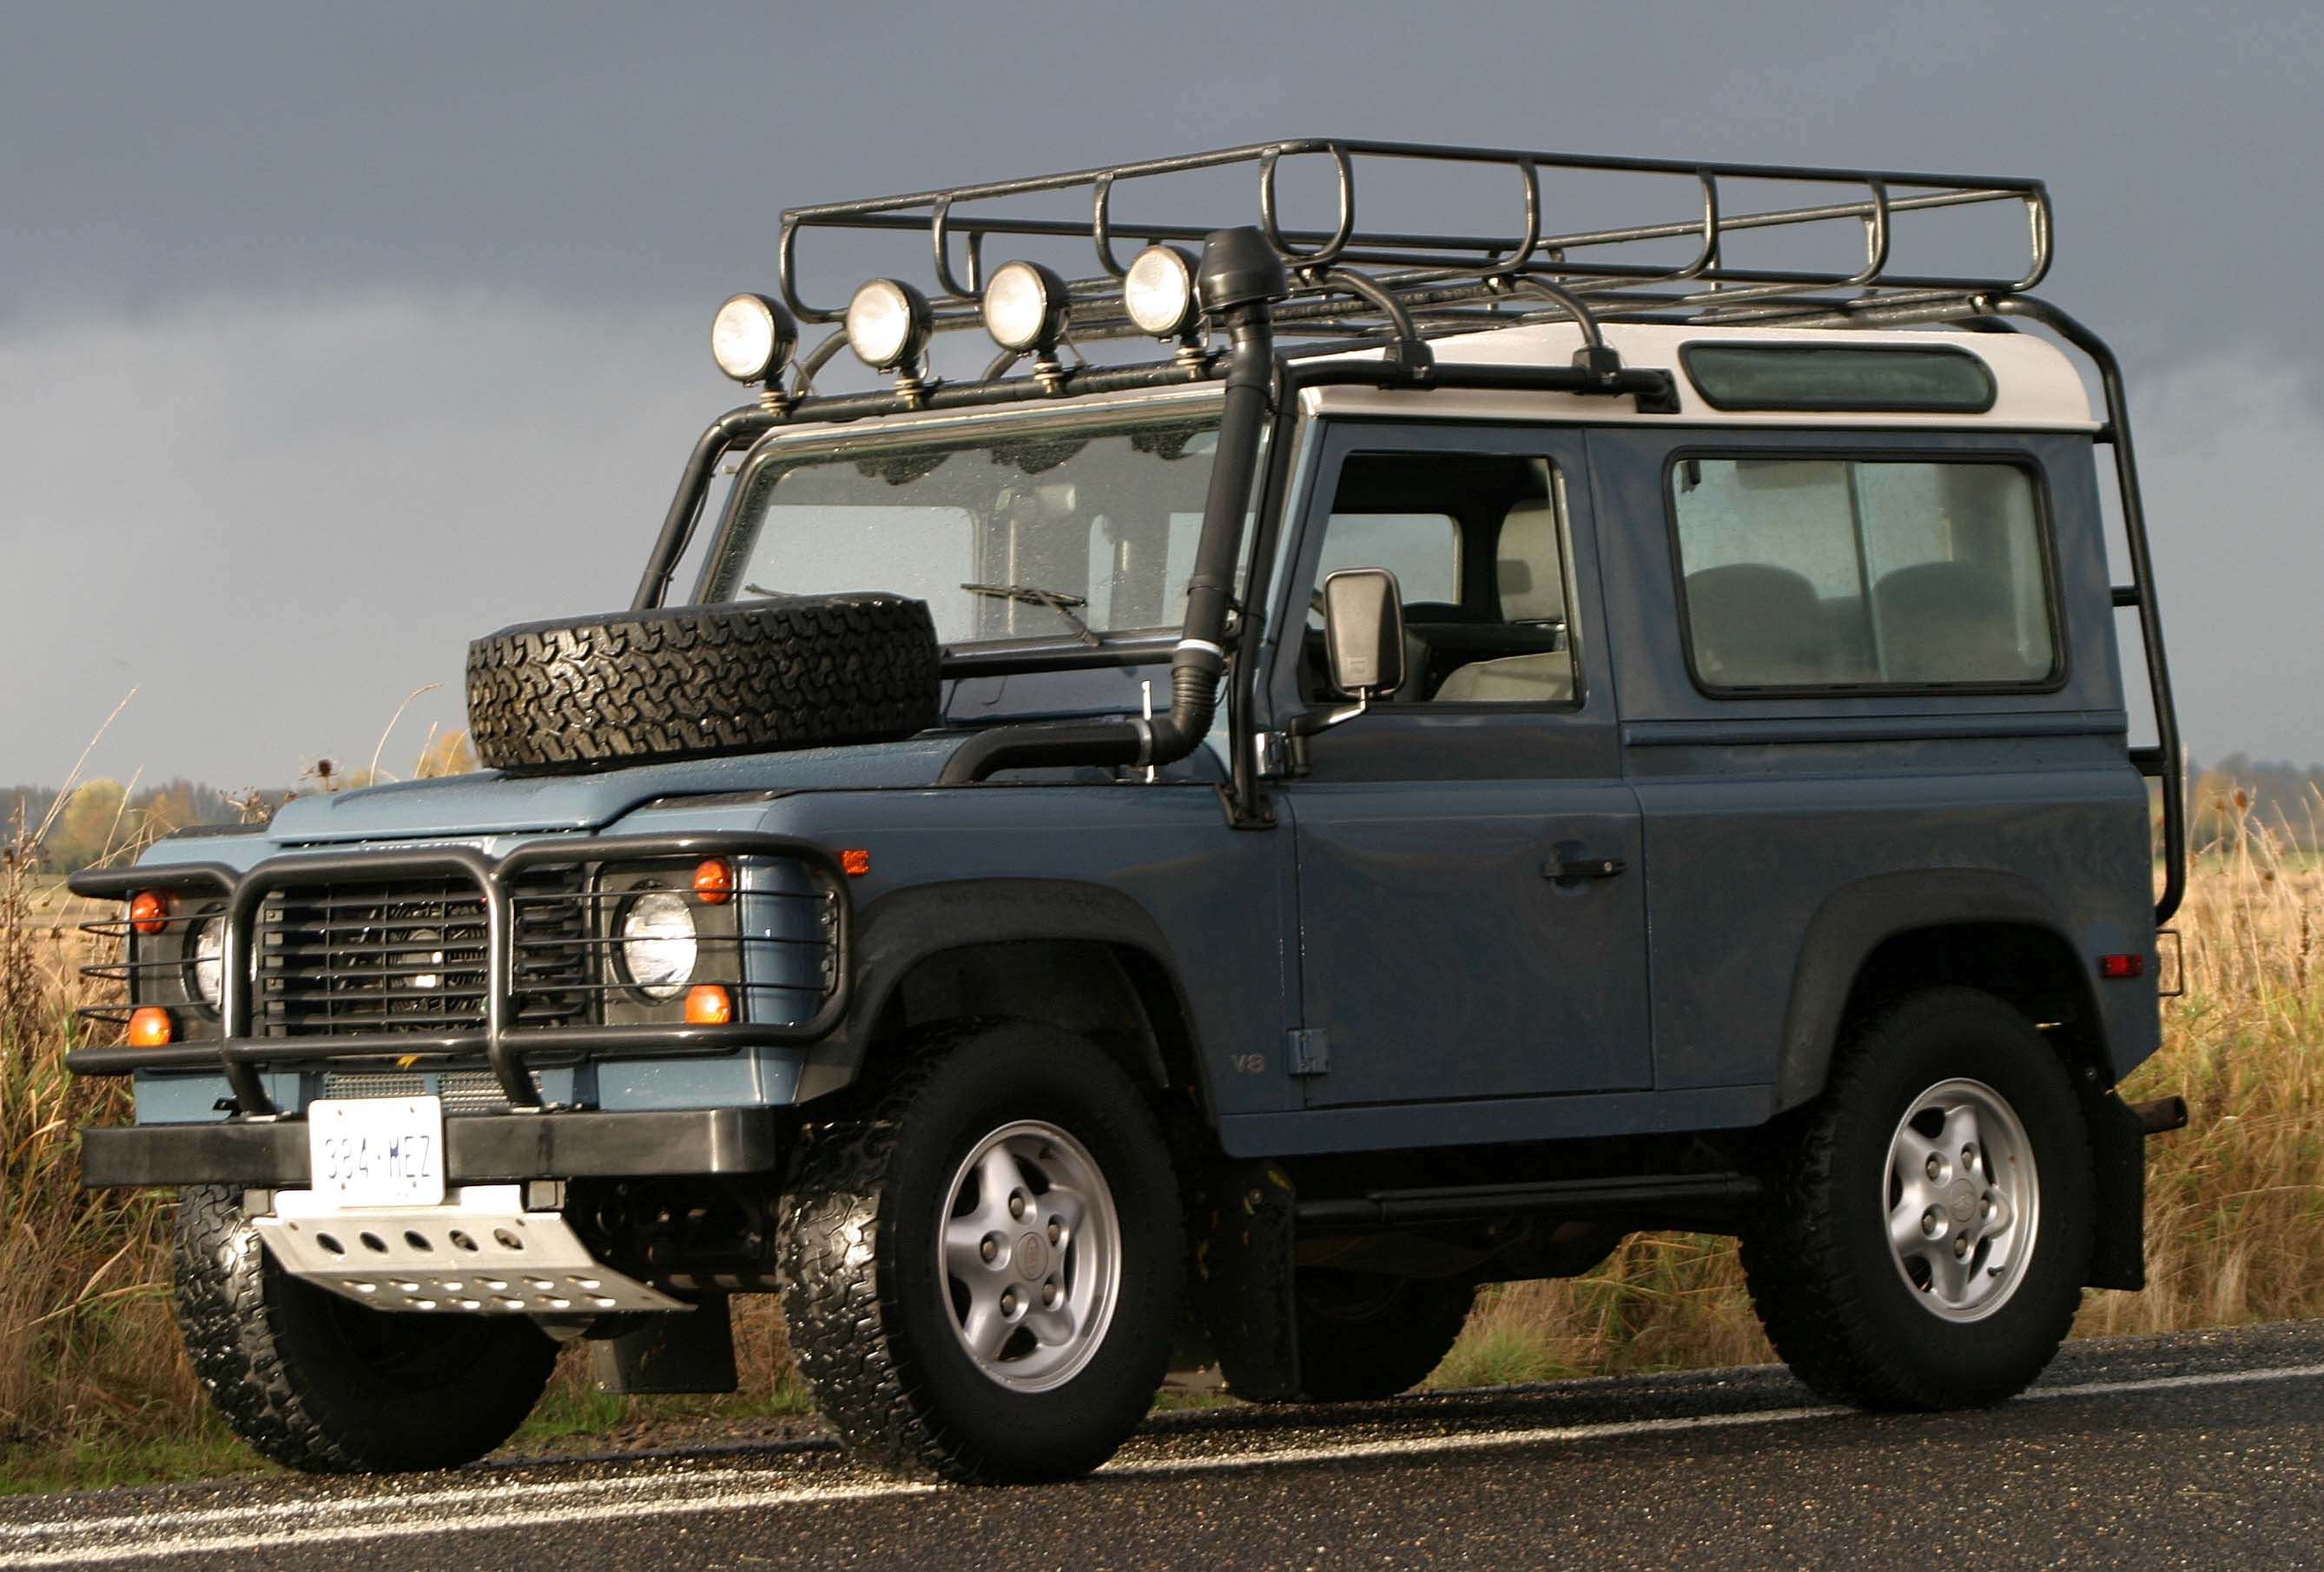 landrover adventure buy defender rover review auto land express dsc